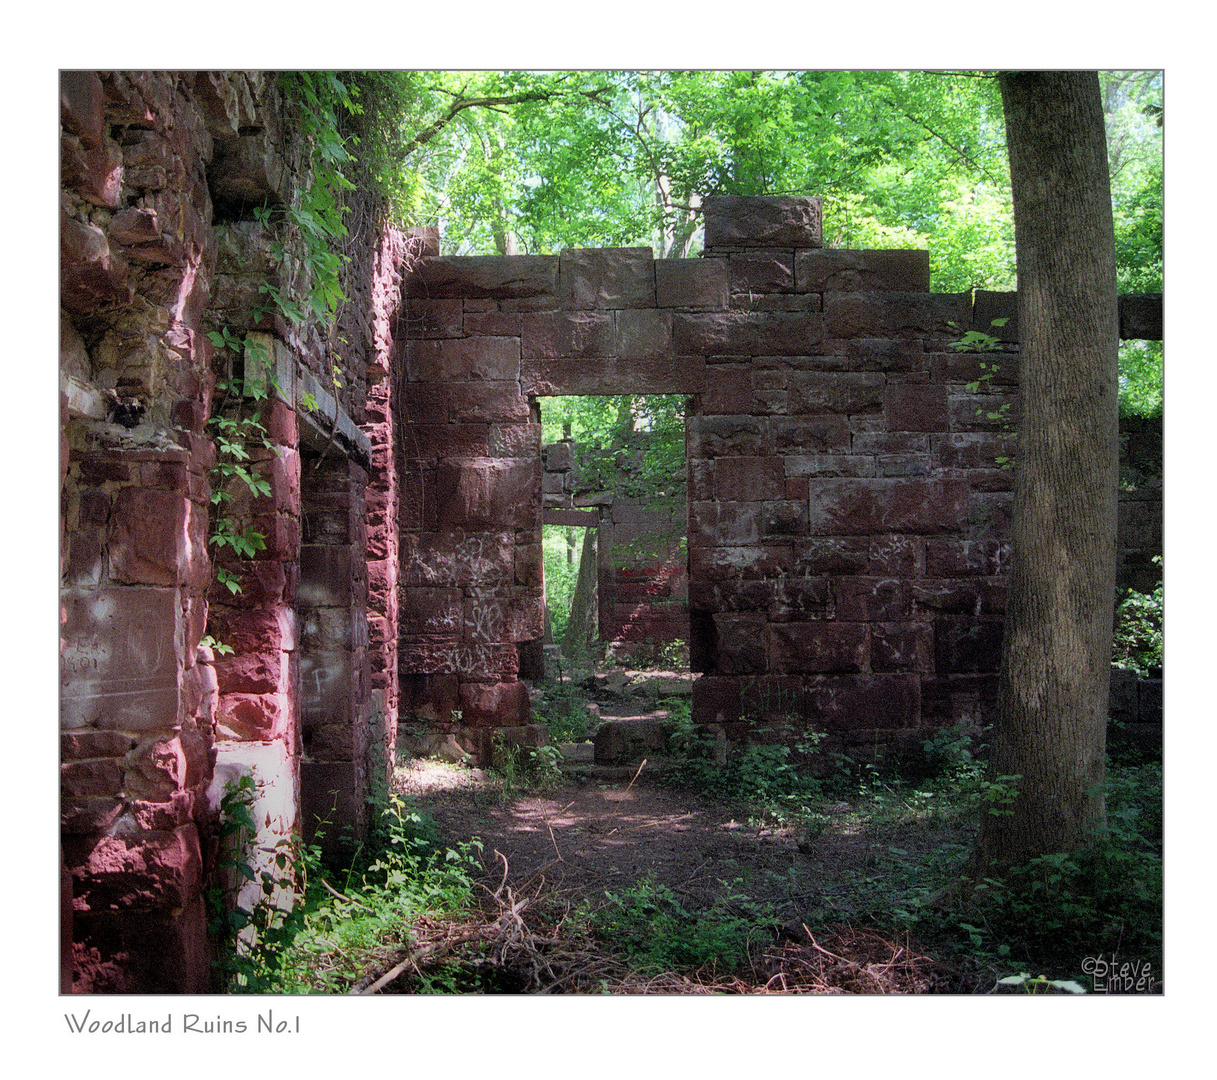 Woodland Ruins No.1 (F11 for best viewing)